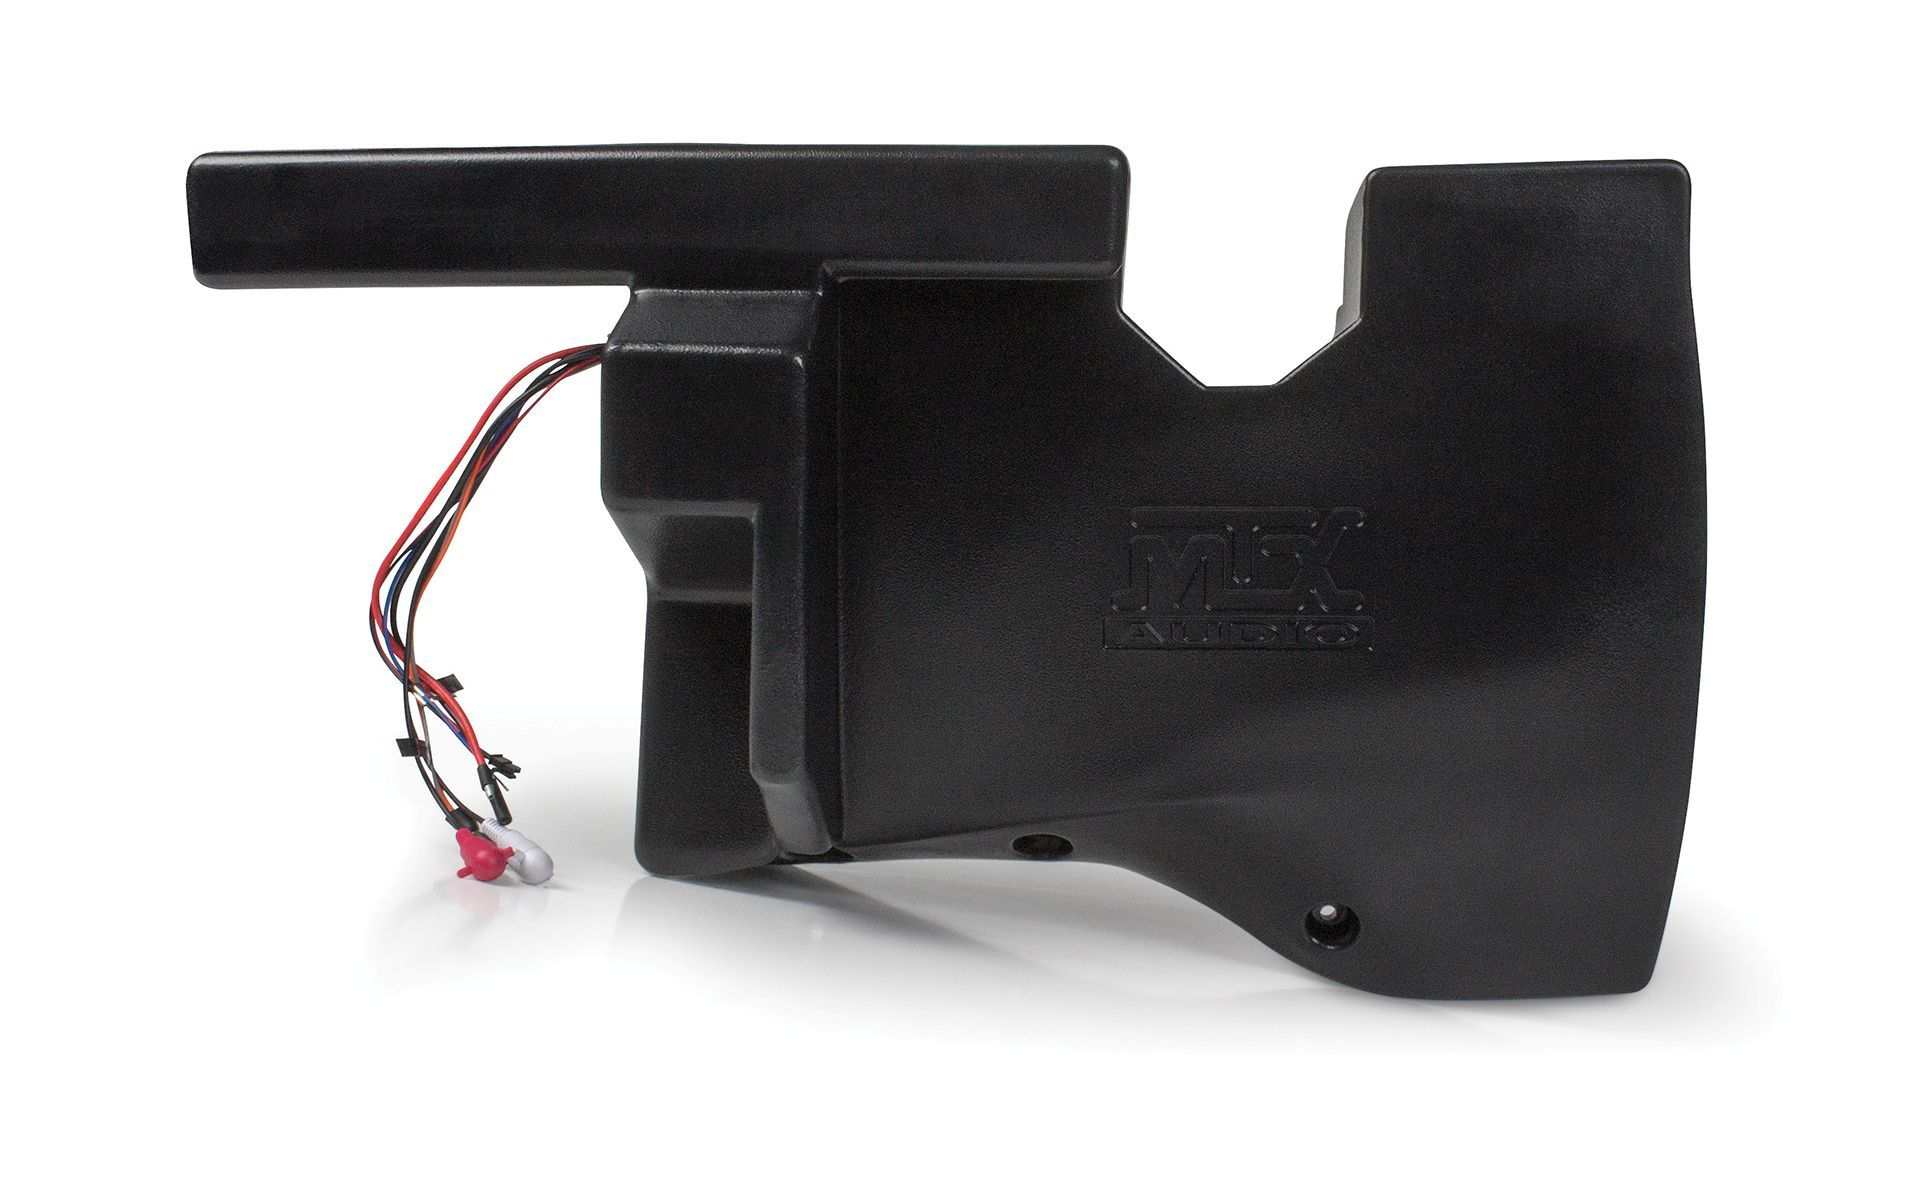 Rzrxp 10 Amplified Subwoofer Enclosure For Use On Select Polaris Rzr Wiring Models Mtx Audio Serious About Sound